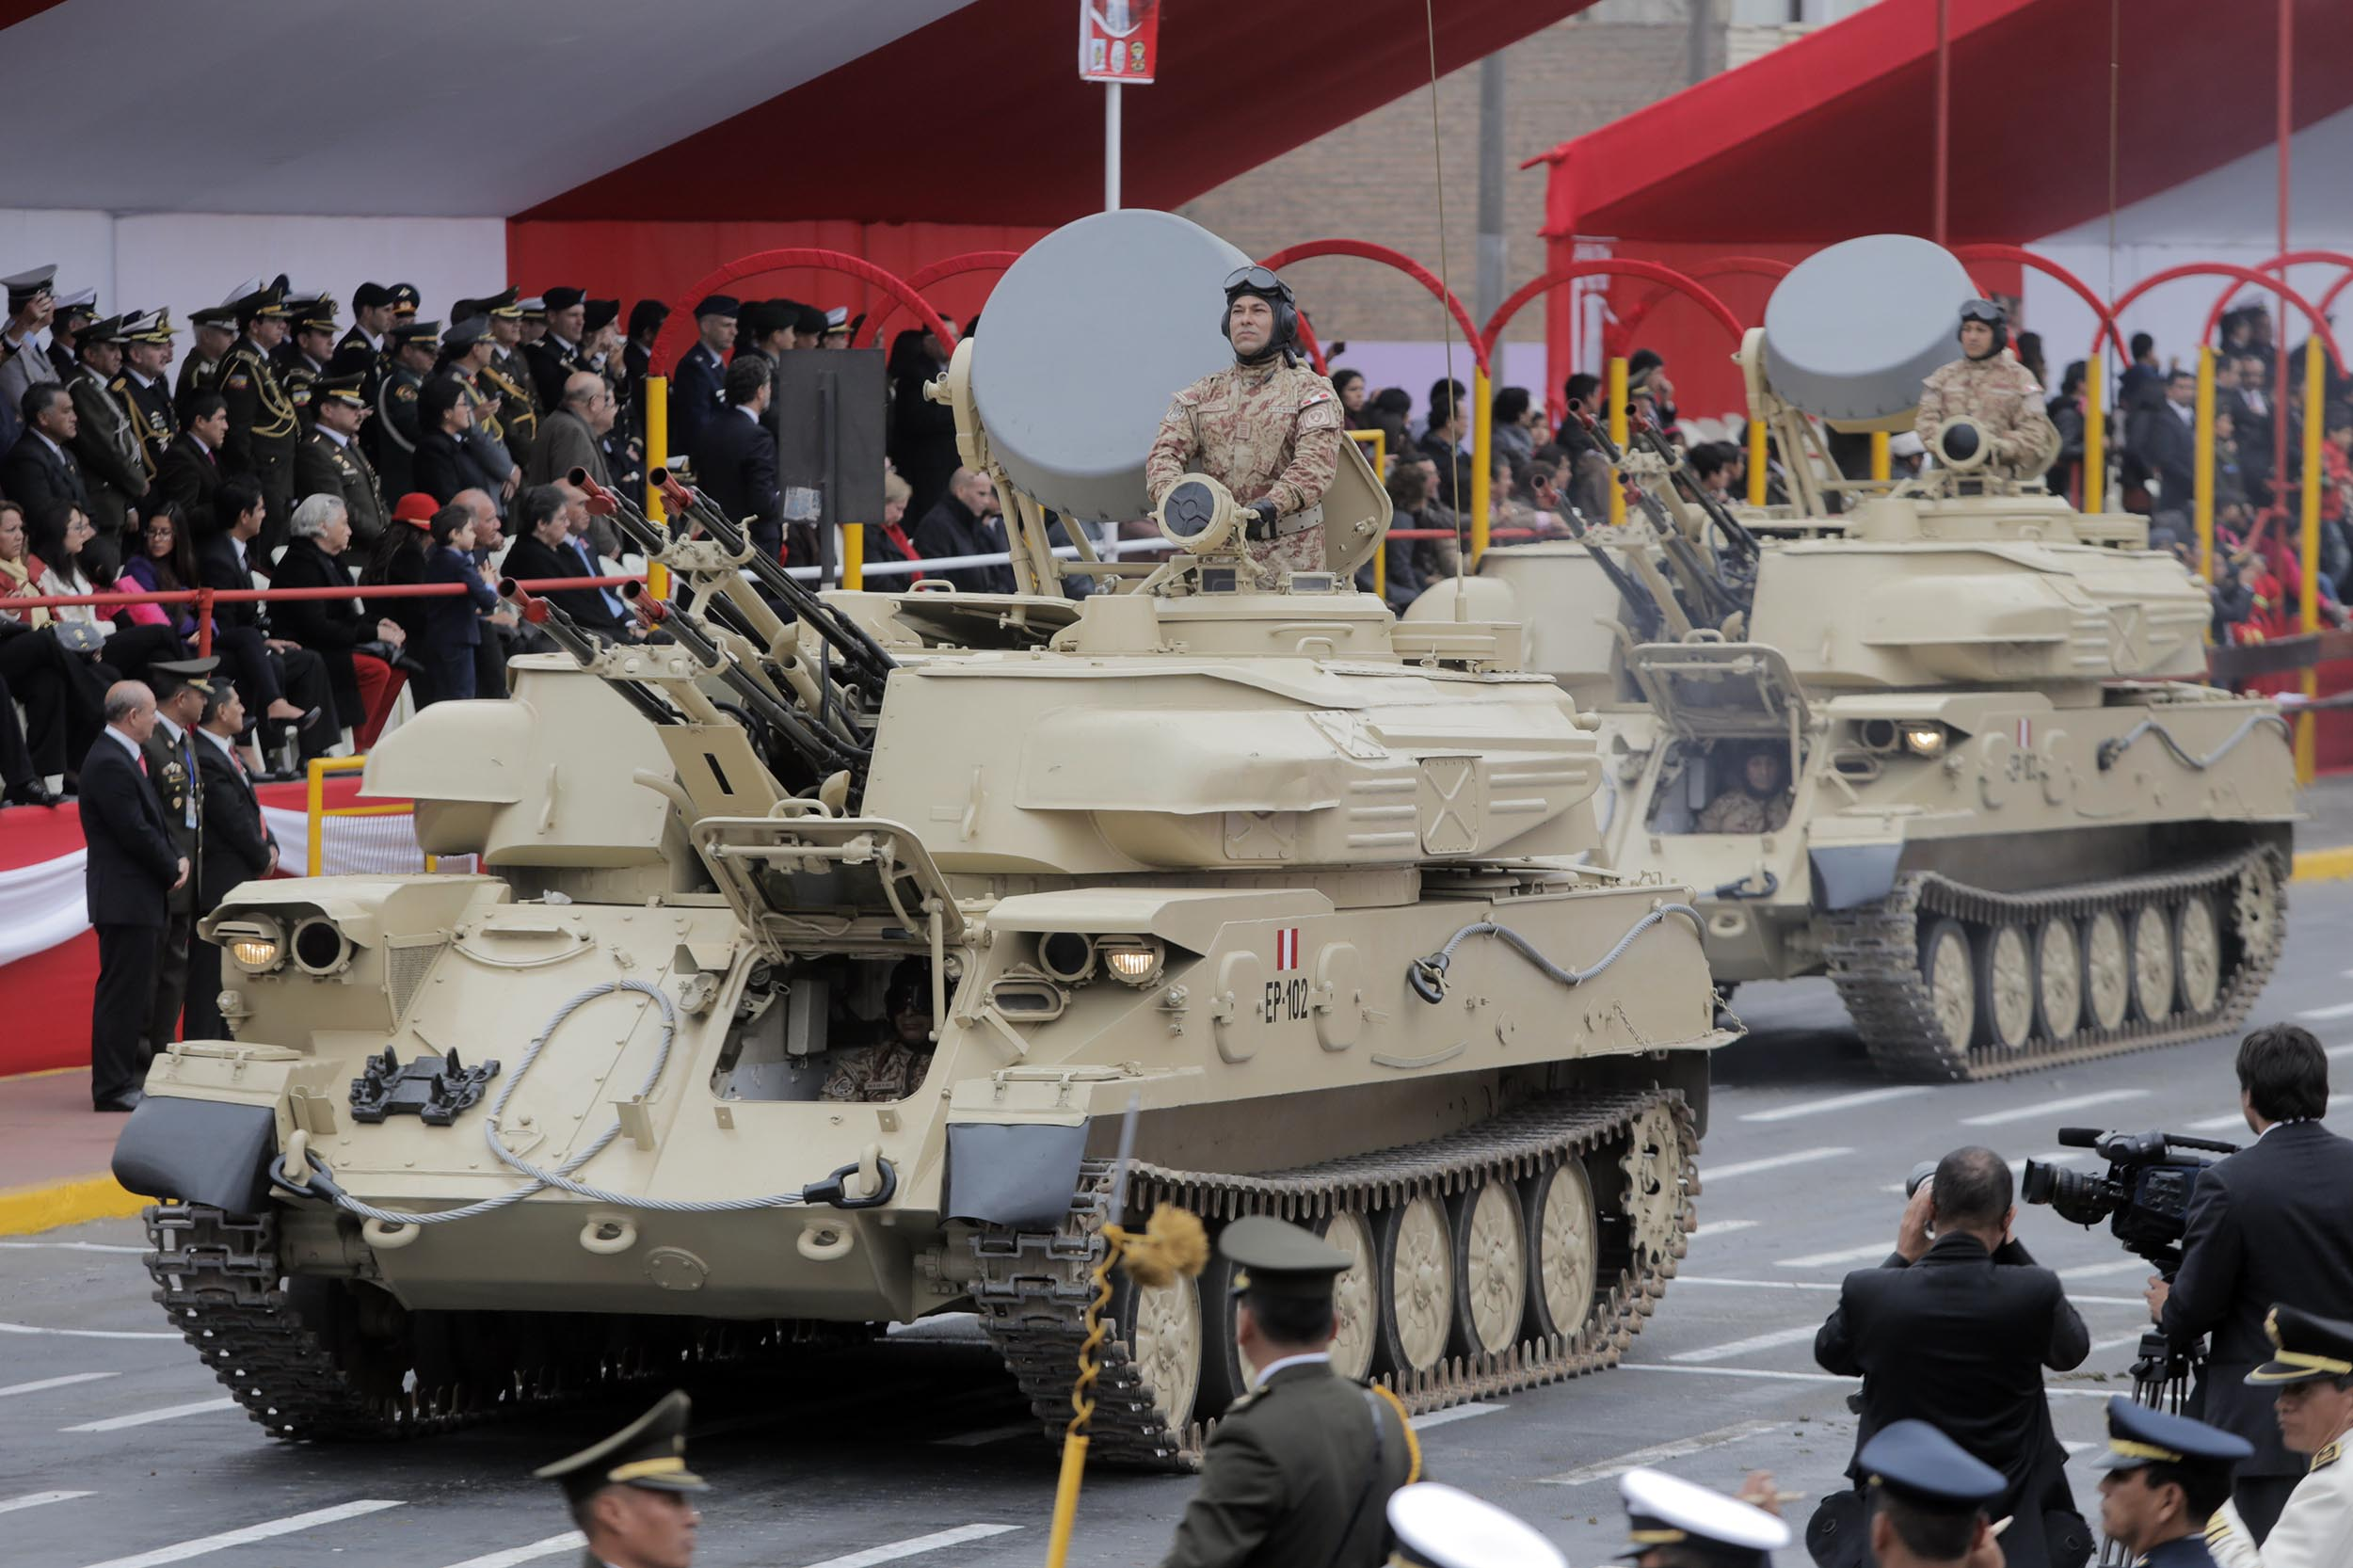 ZSU-23-4s during a Peruvian military parade. Note the large grey radar antennae, which ZSU-23-4MPs lack.